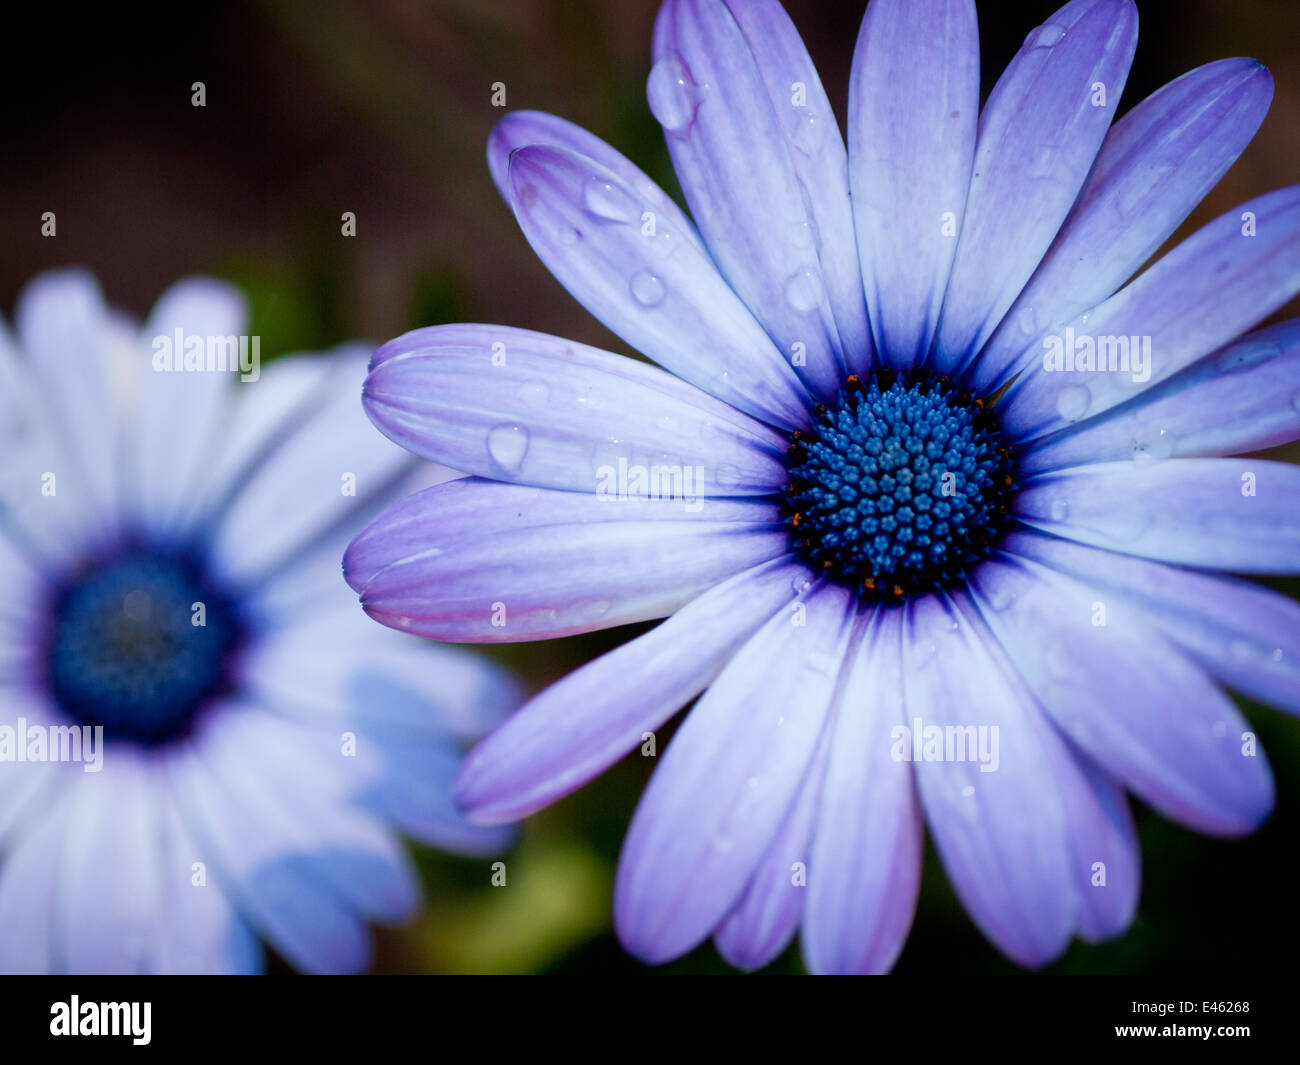 South african daisy stock photos south african daisy stock images a blue eyed daisy osteospermum flower also known as an african daisy izmirmasajfo